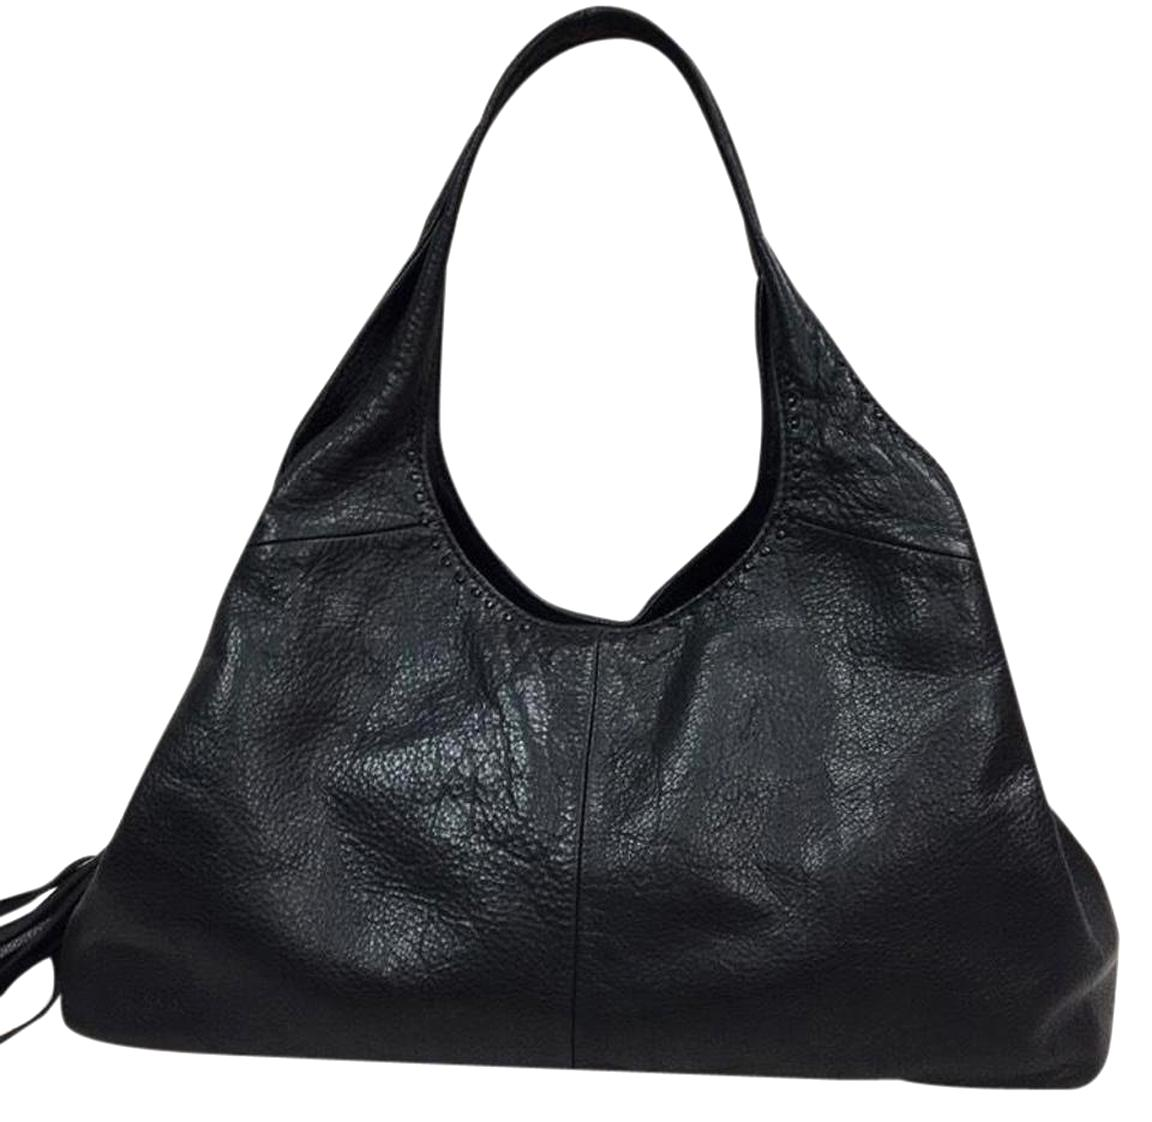 Sigrid Olsen Handbag For Only 2